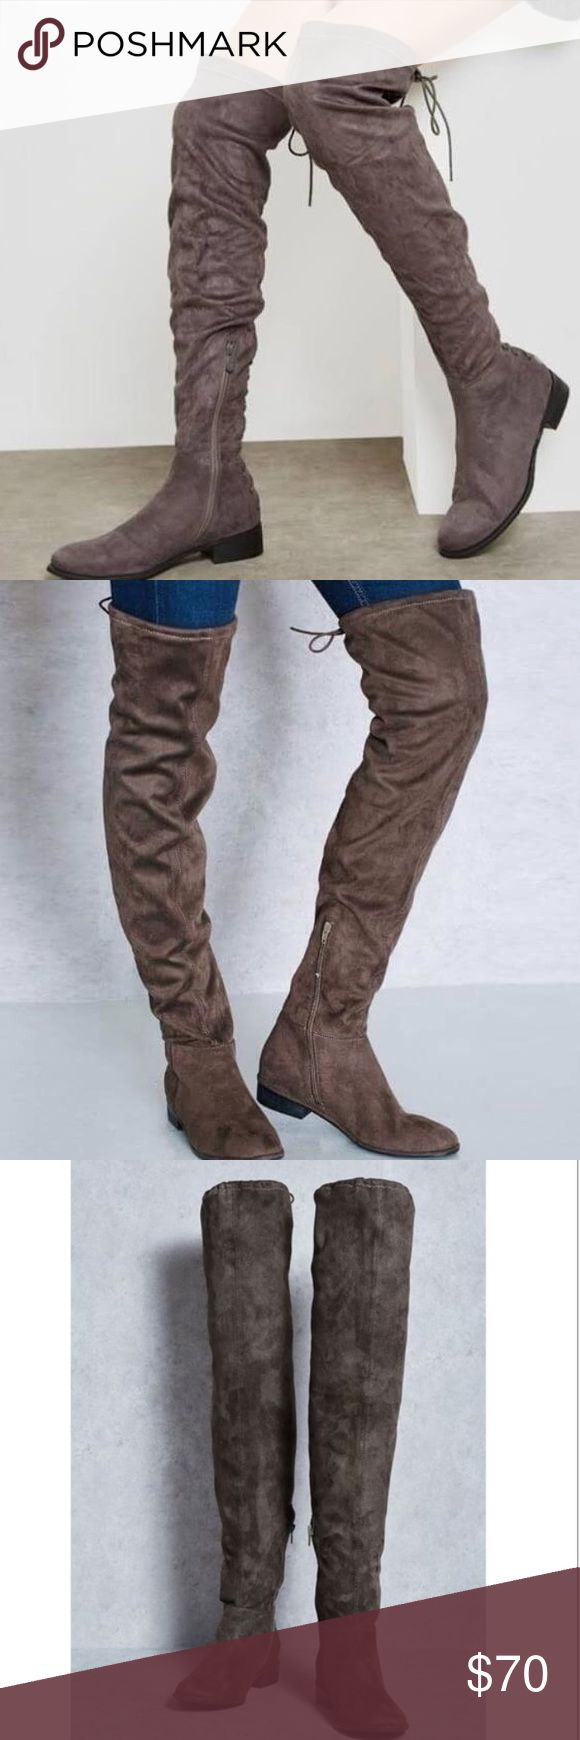 Asos Flat Tie Knee High Boots Perfect condition, never worn!! these go over your knees. beauuutiful boots!! bought them for 90 plus shipping!! i suck at taking pics of shoes but these are in really good condition :) looks exactly like the modeled photos on!! message me for discount options!! ASOS Shoes Over the Knee Boots